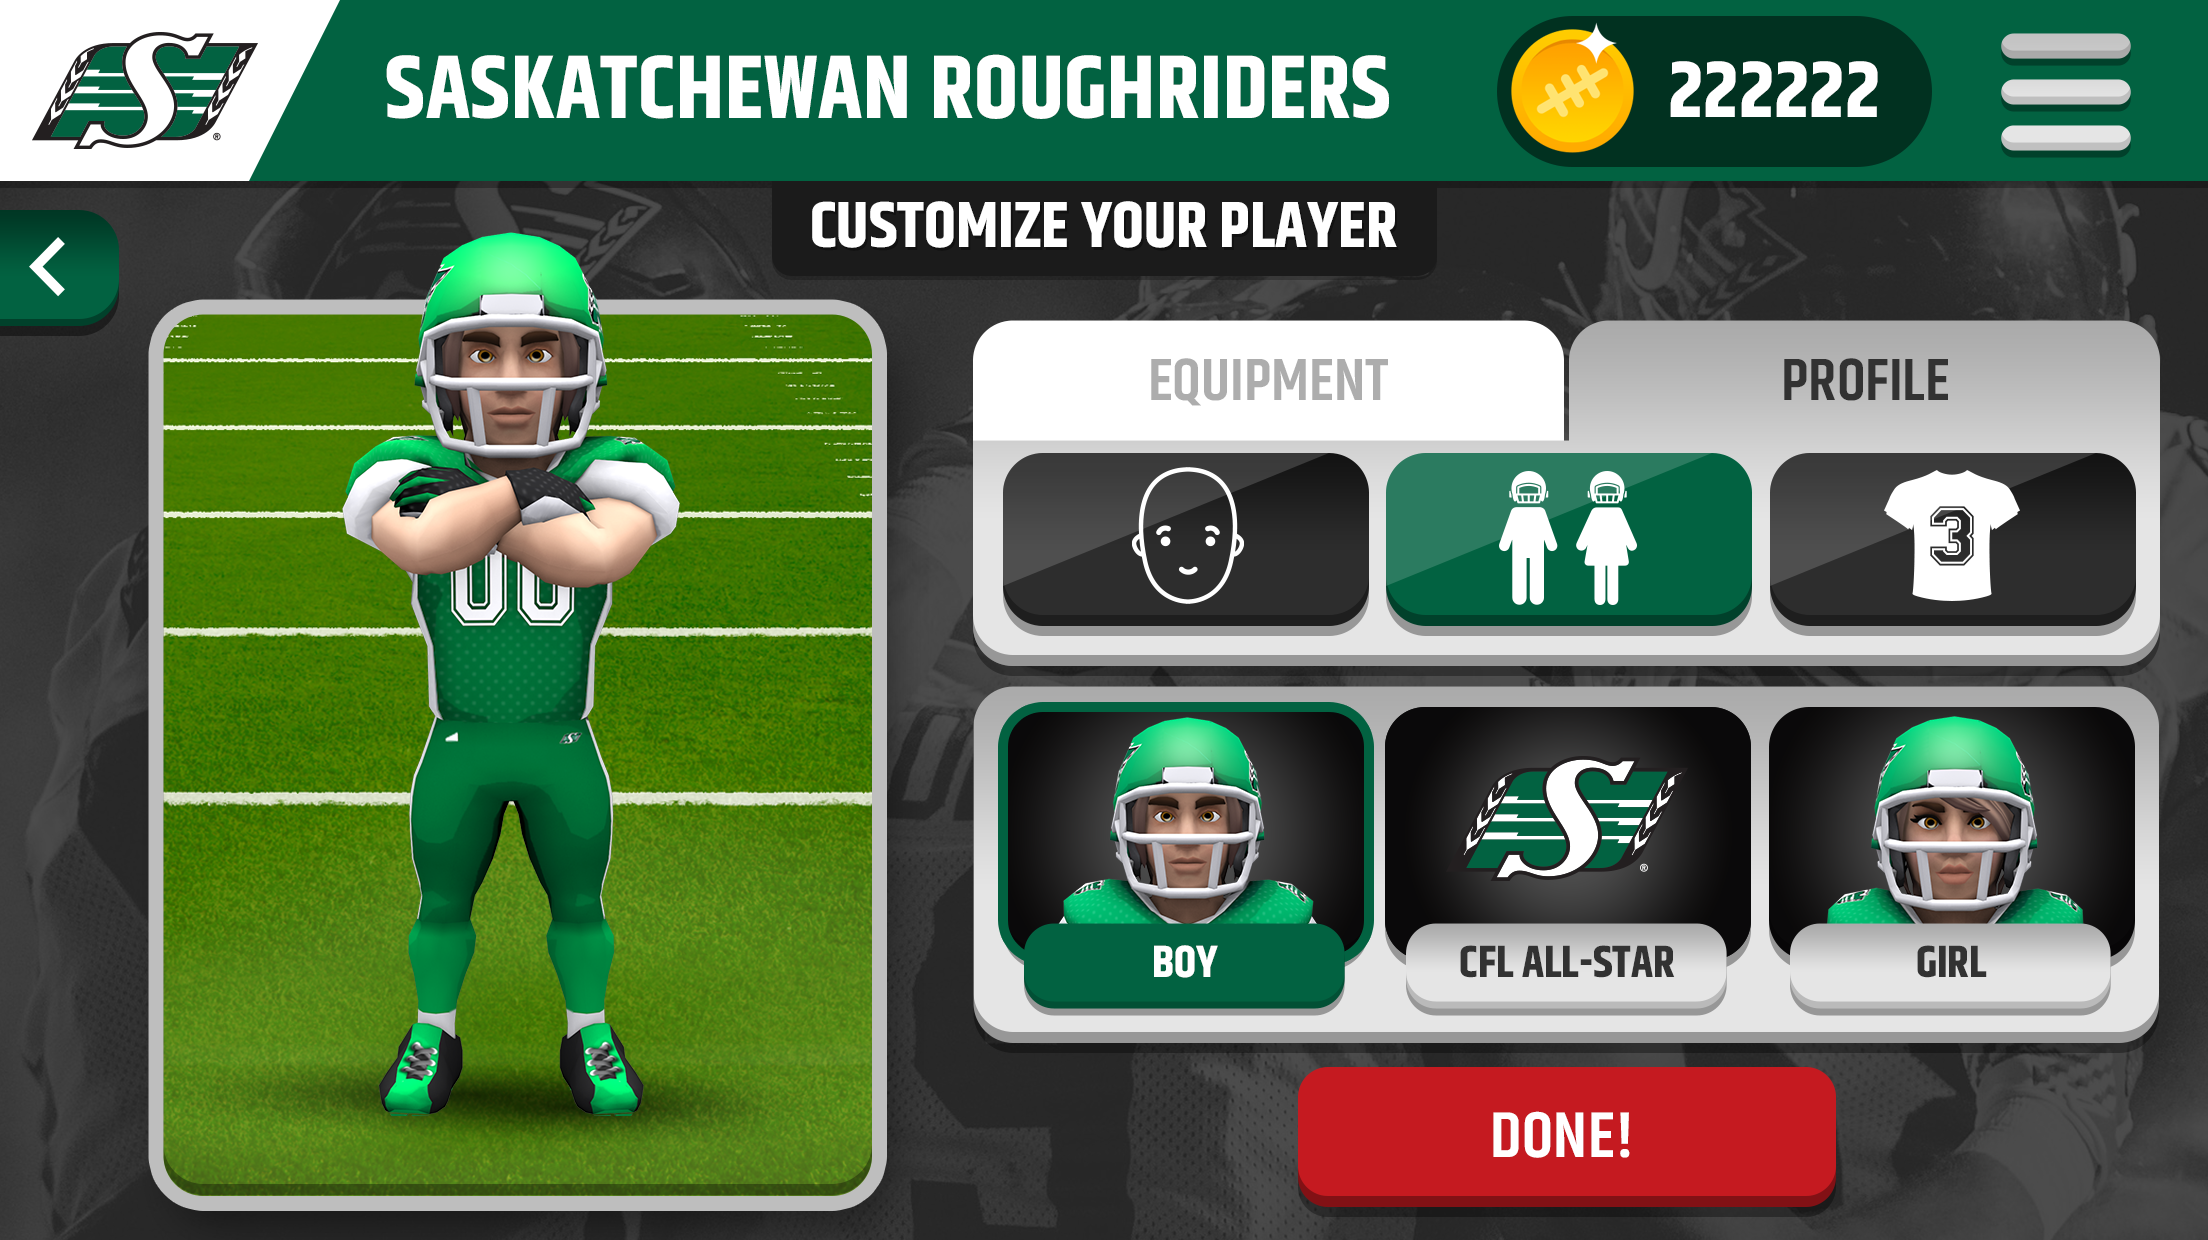 05 Roughriders_profile_playerSelection.png